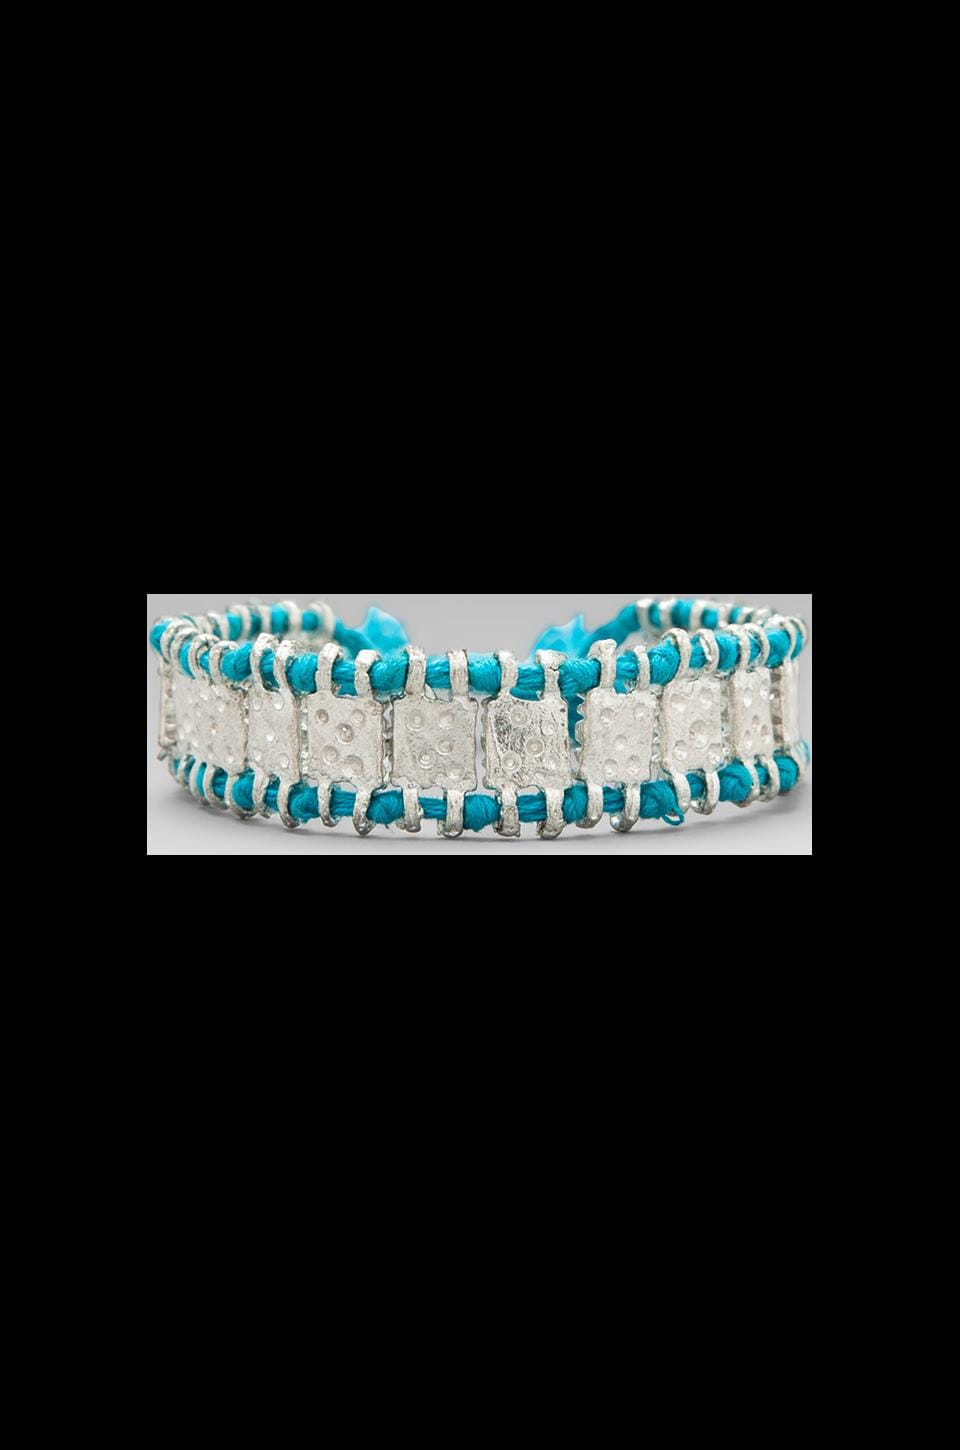 CHAN LUU Pull Tie Bracelet in New Turquoise Mix